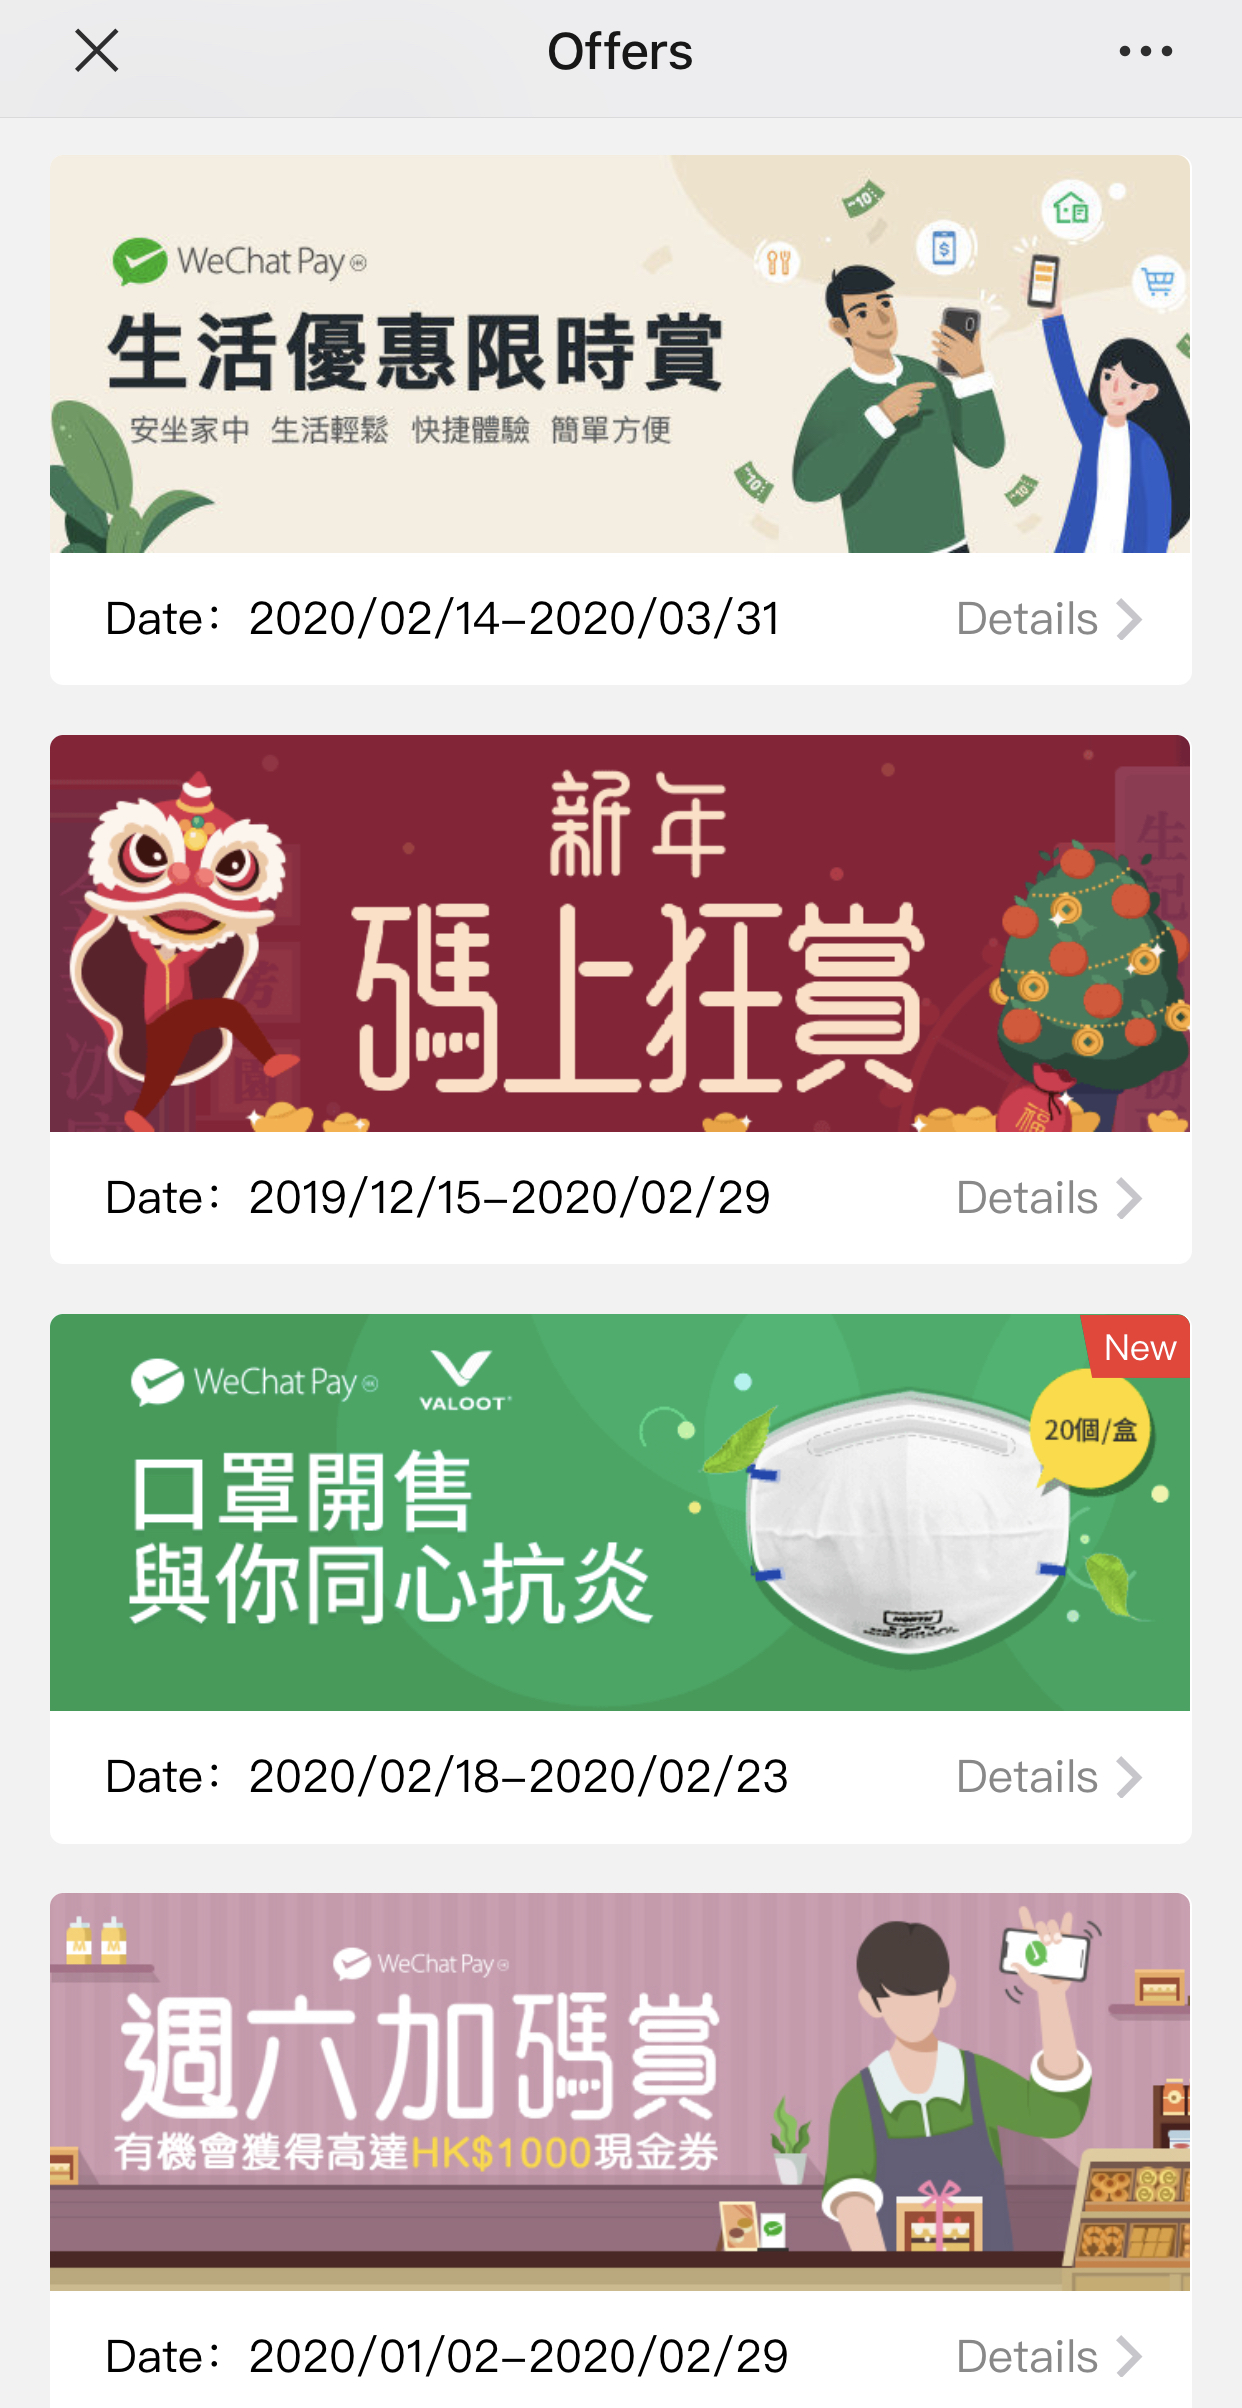 WeChat Pay Offer